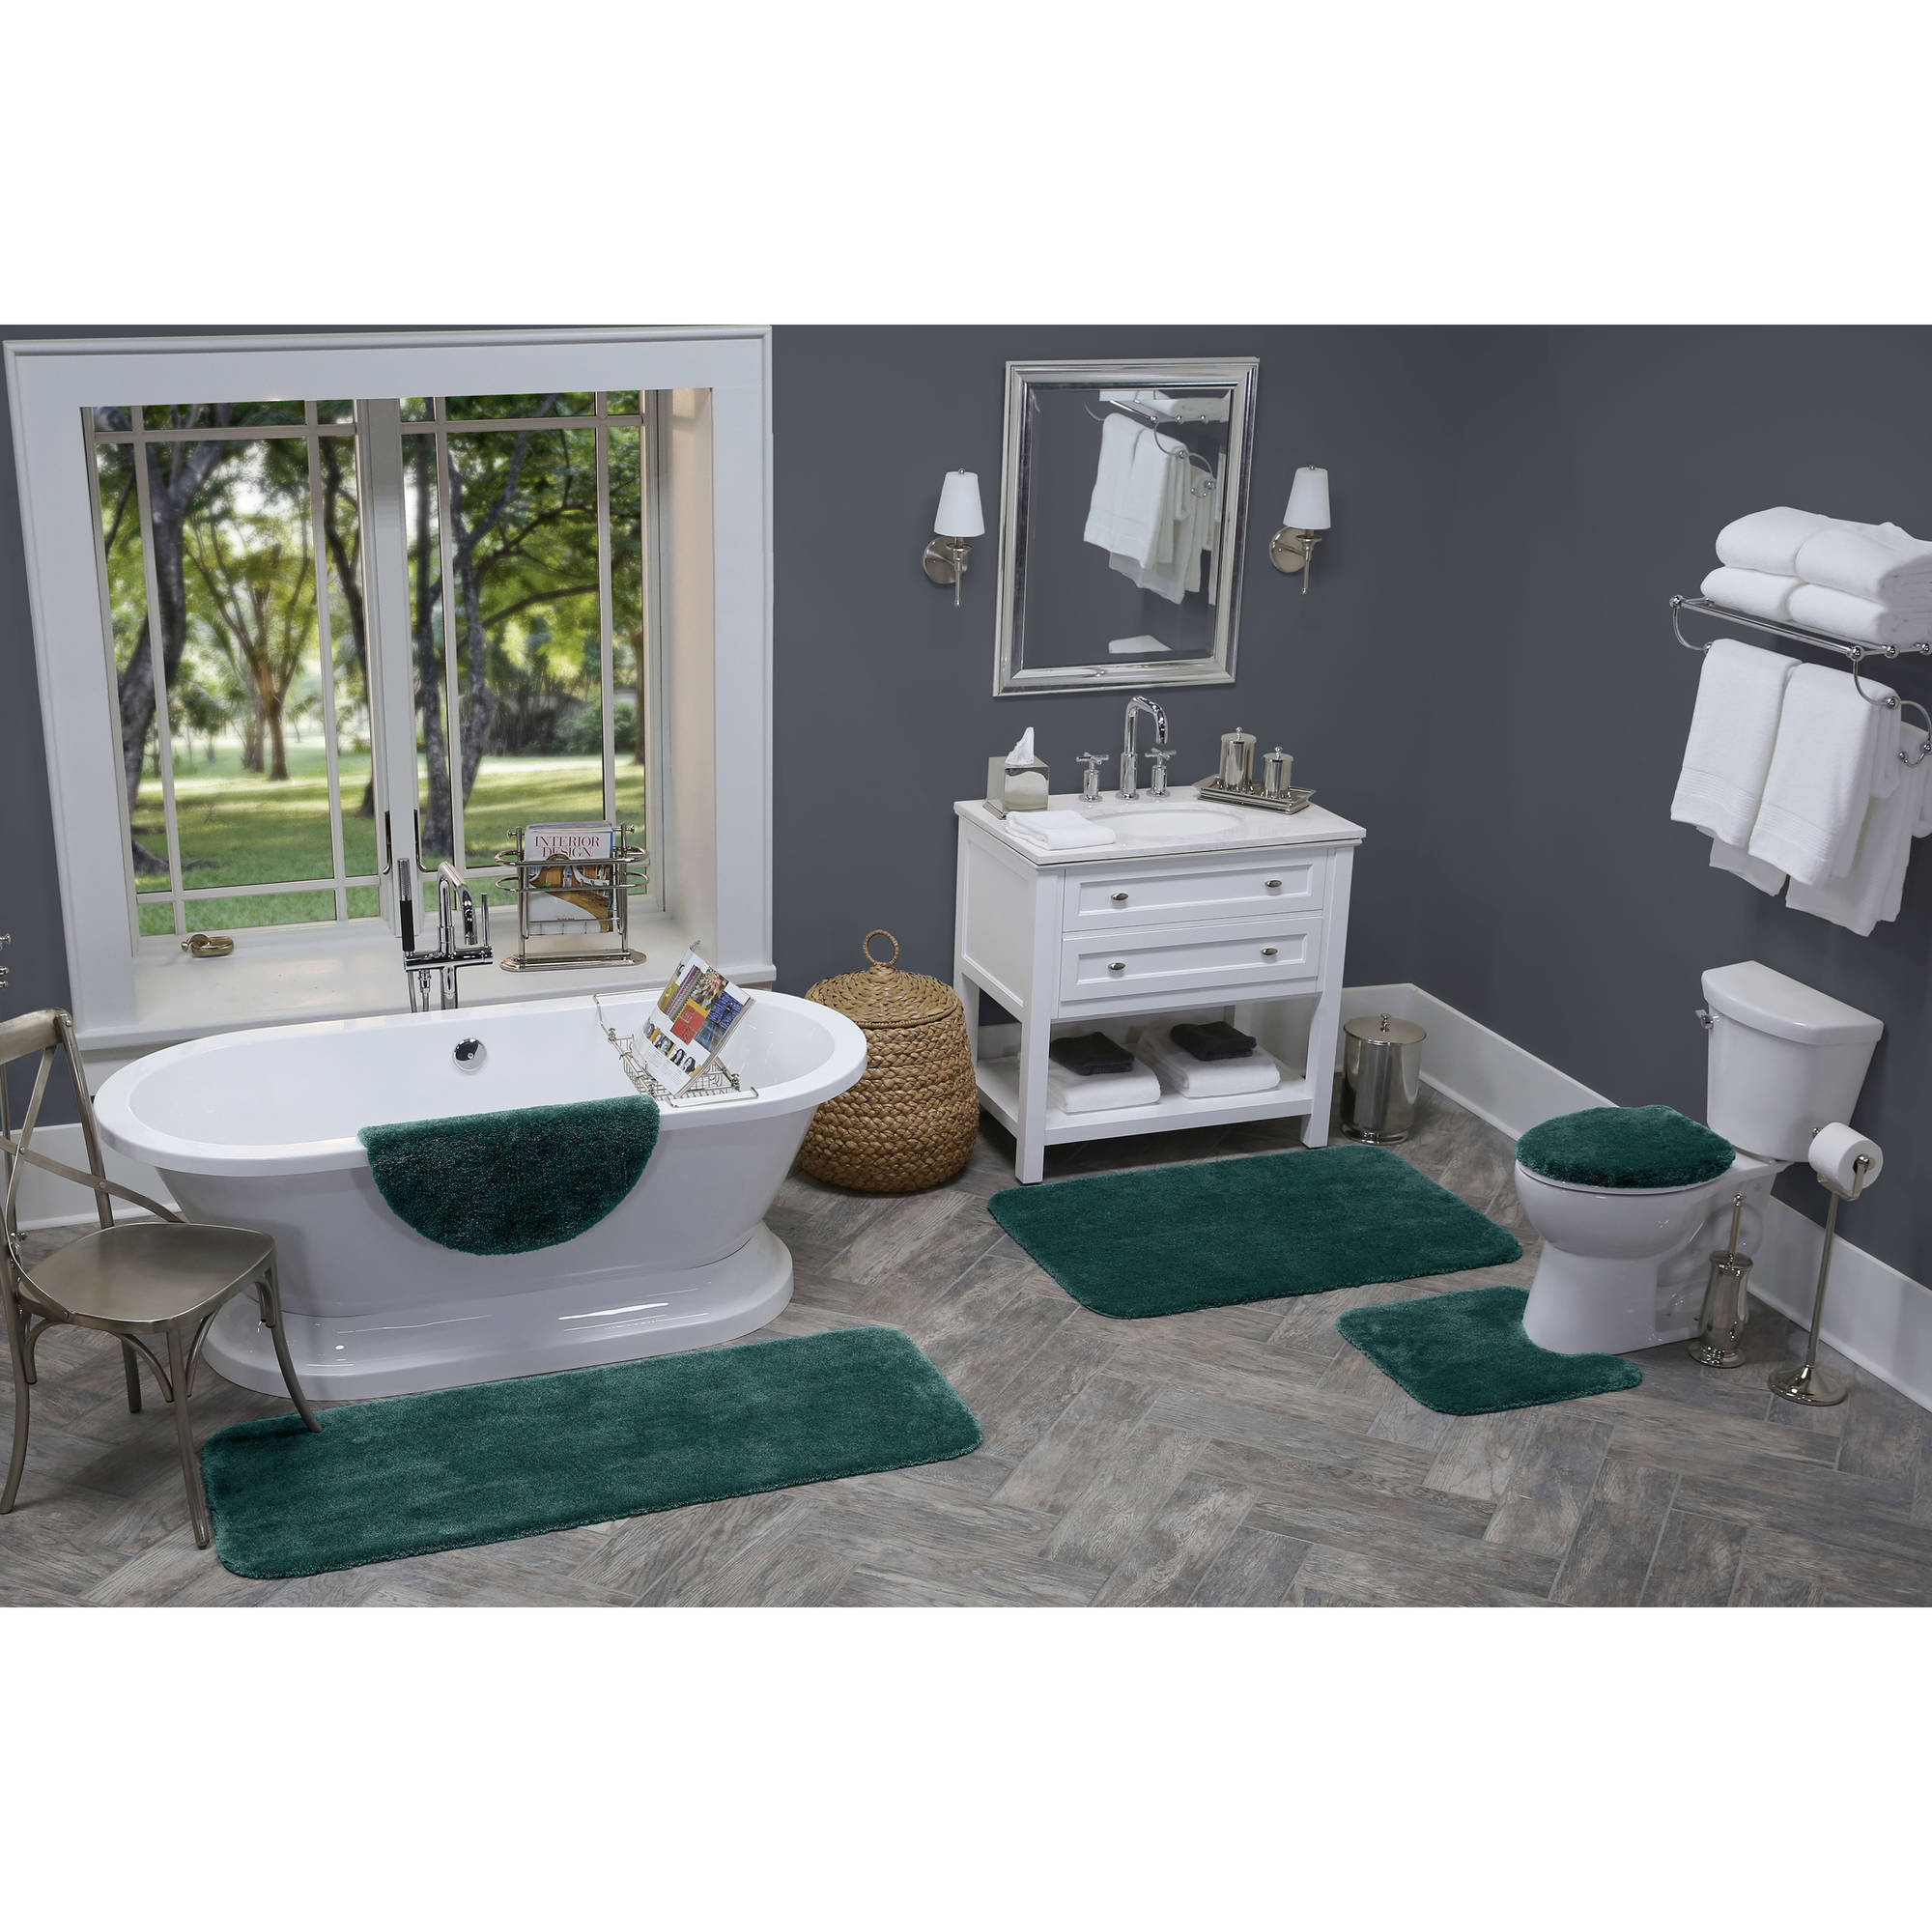 Better Homes and Gardens Extra Soft Bath Rug Collection, Contour